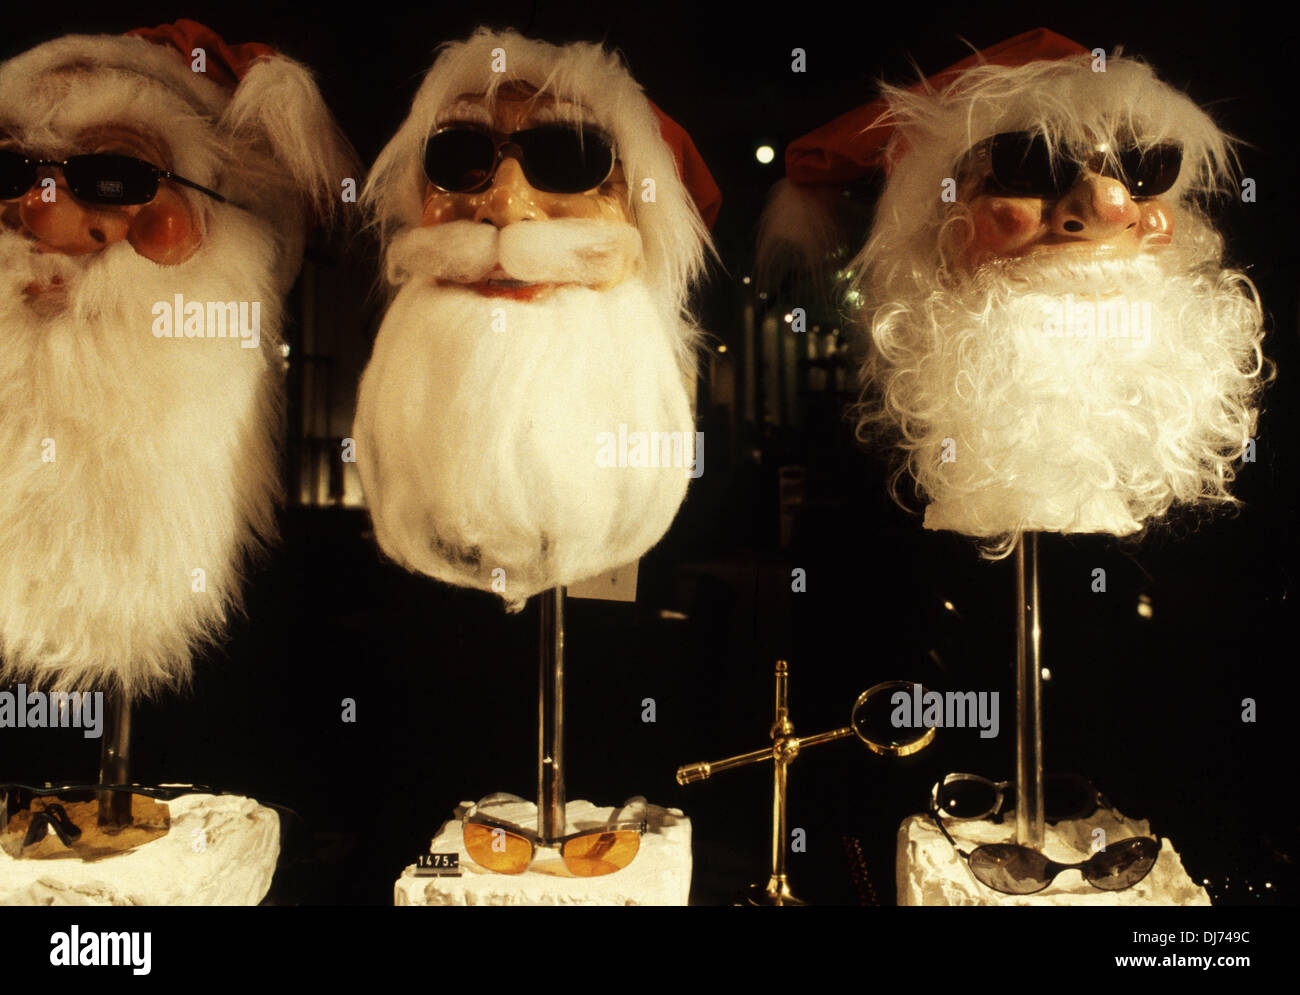 Santa Claus Mannequin Stock Photos & Santa Claus Mannequin Stock ...